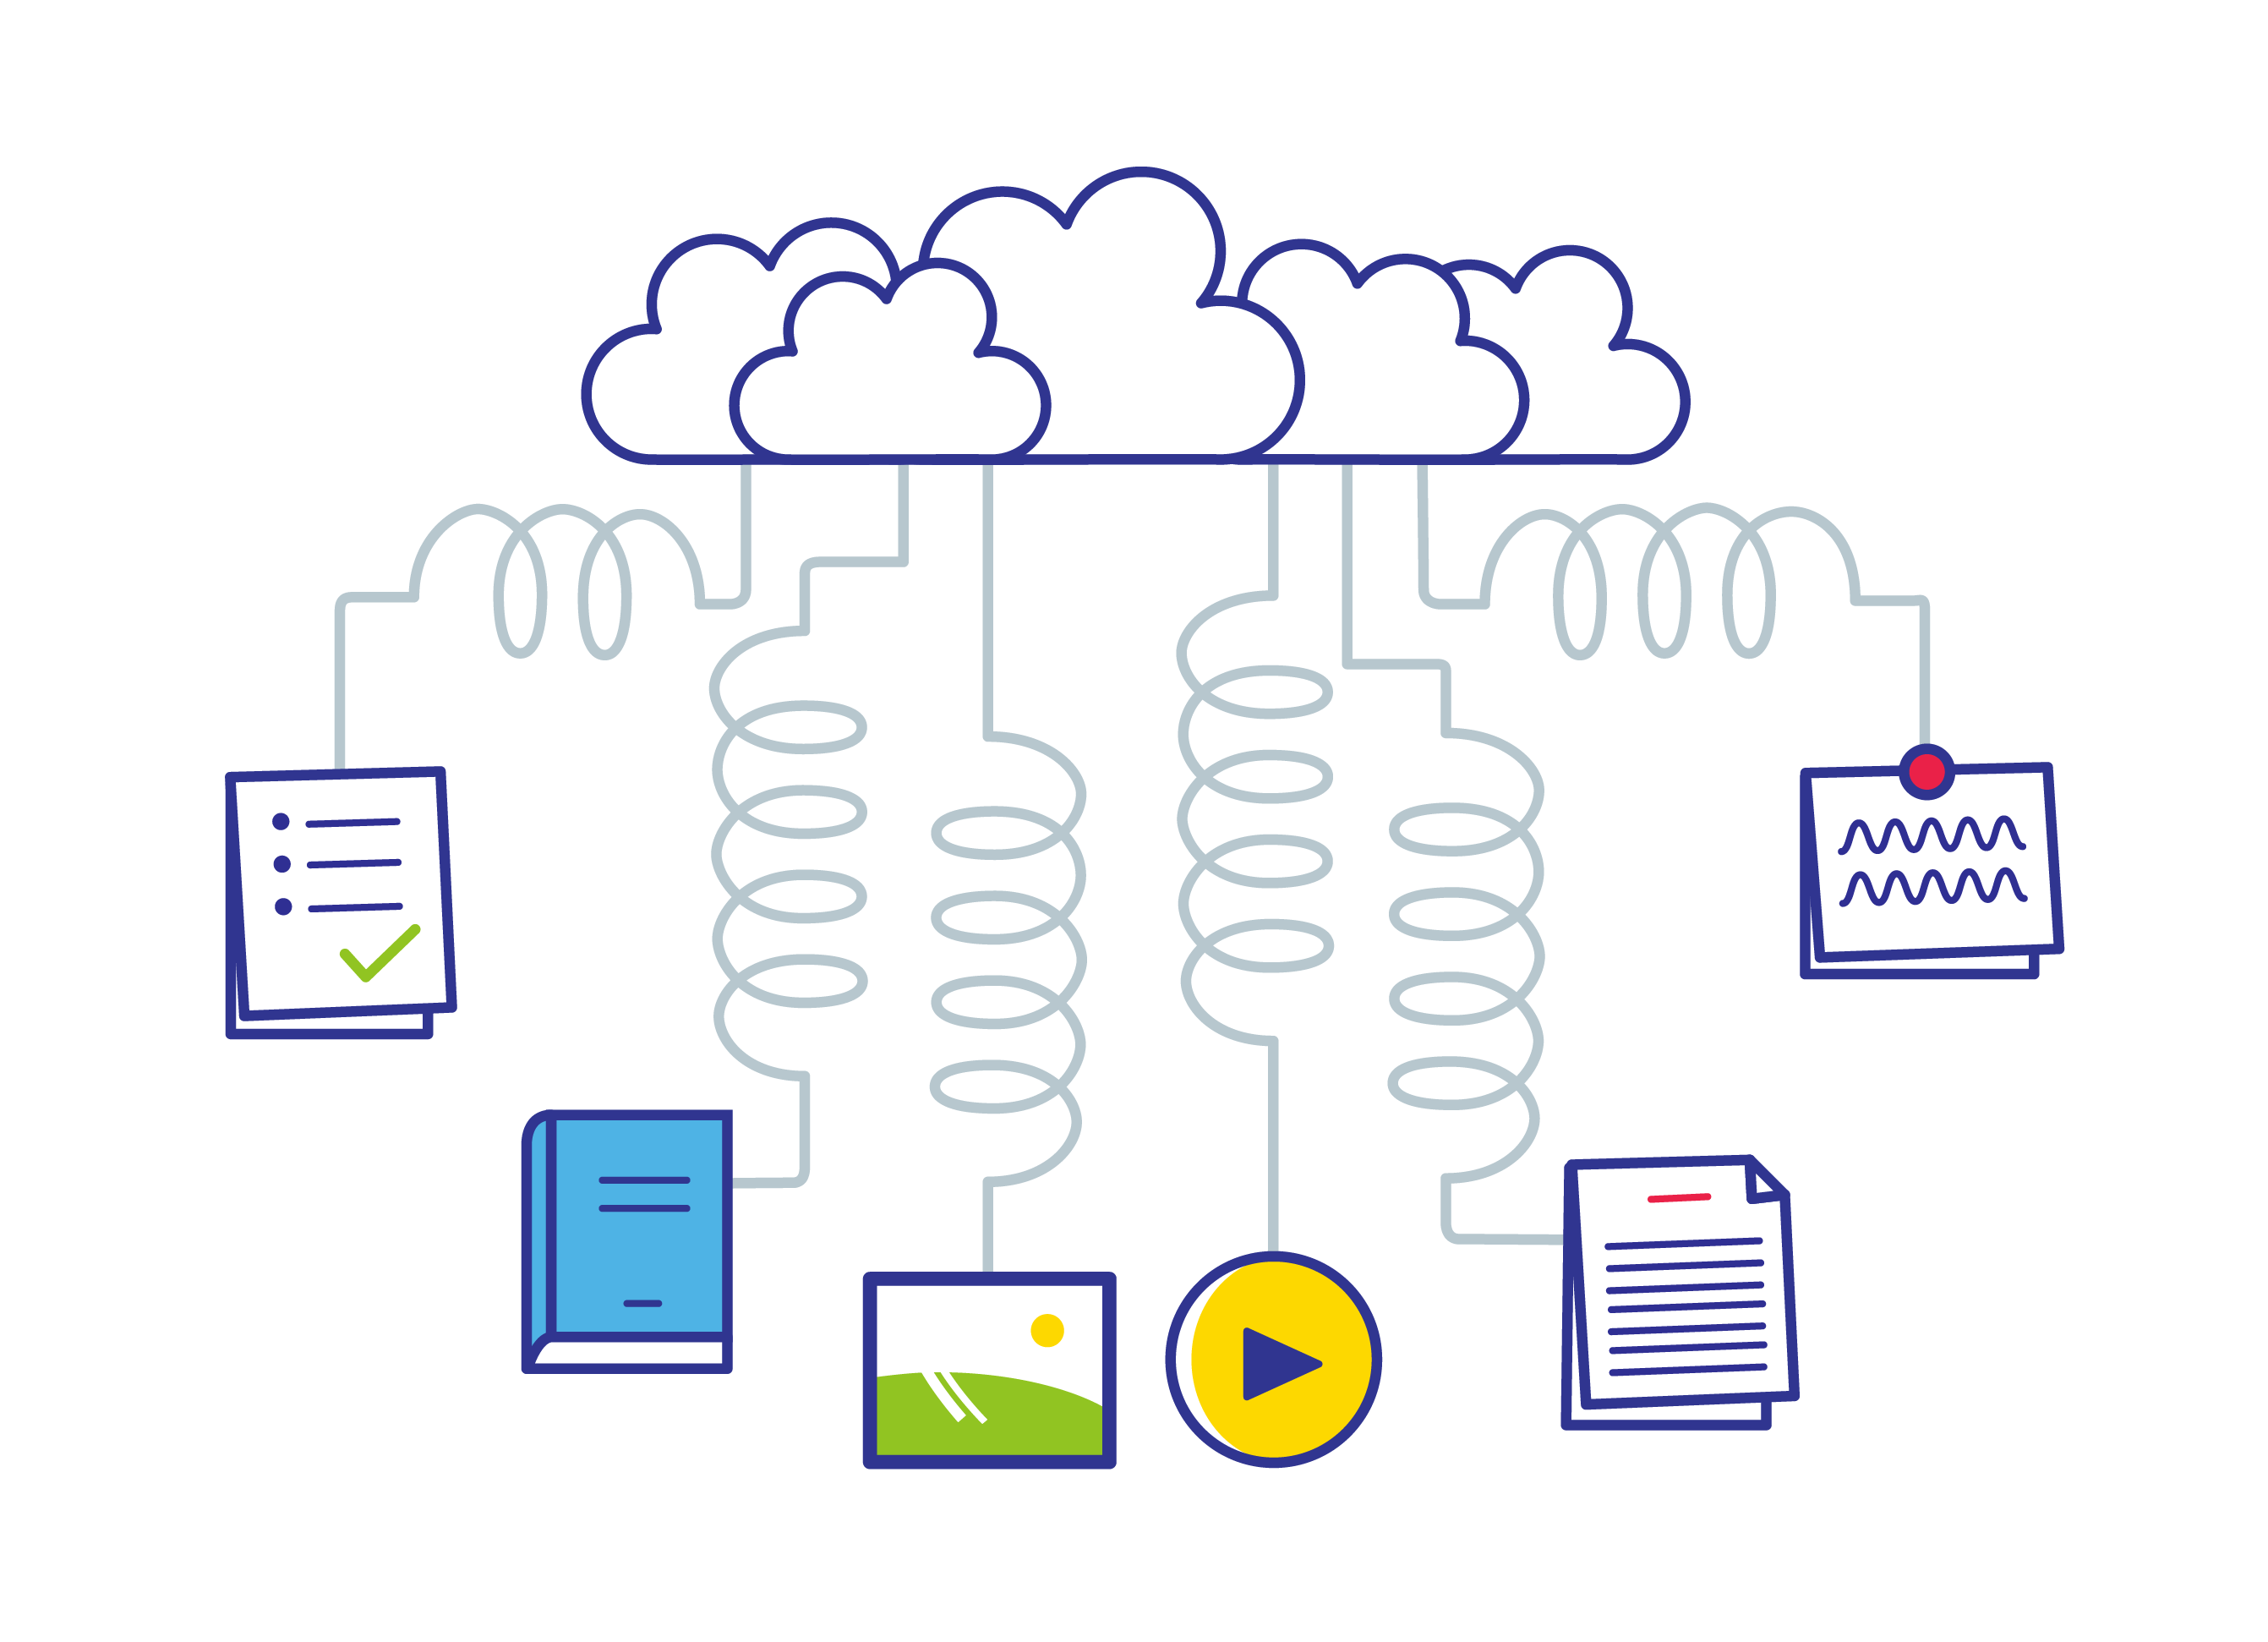 icon set - illustration about a digital cloud